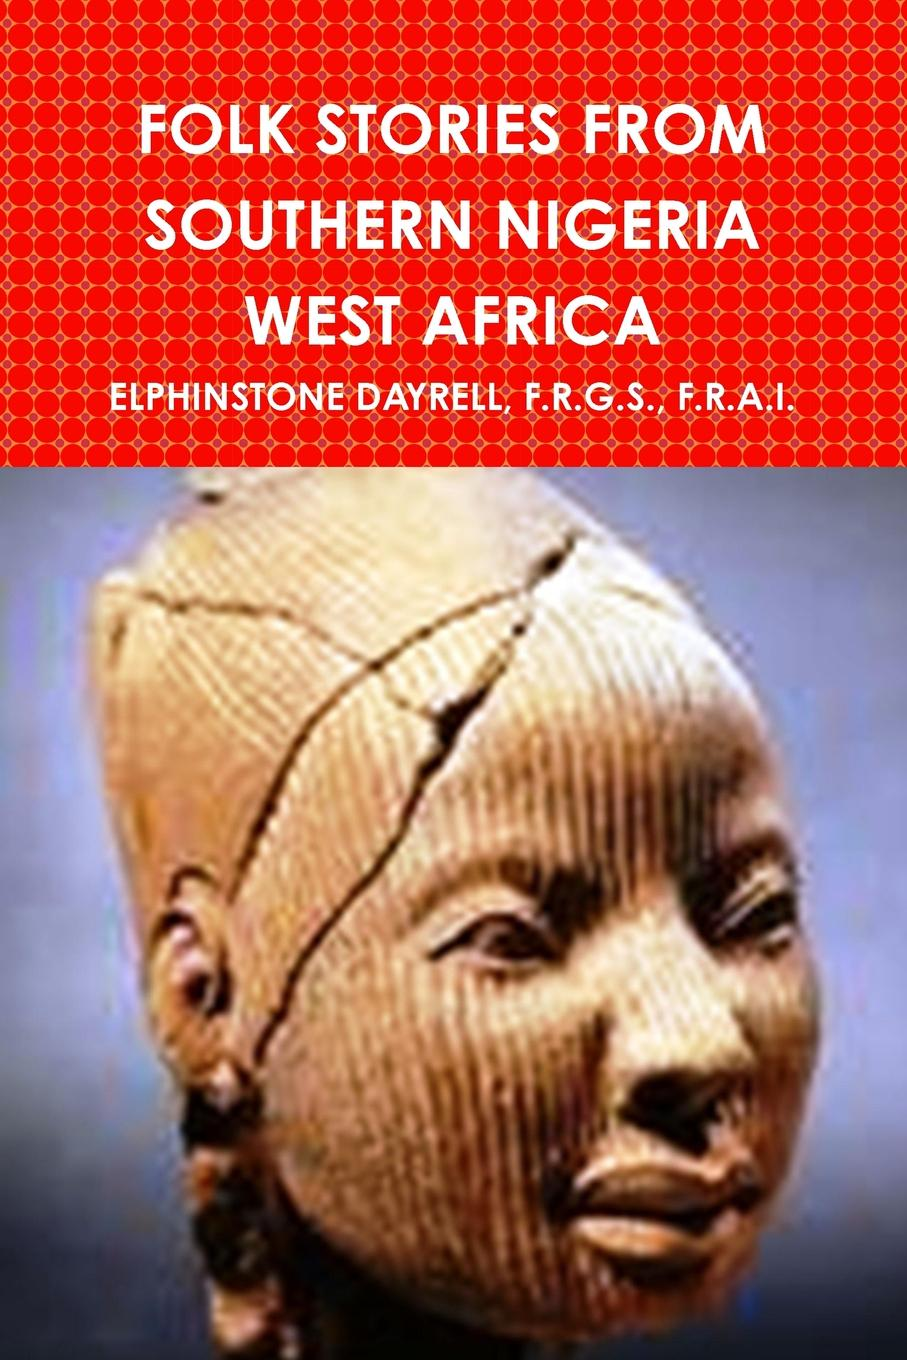 F.R.G.S. F.R.A.I. ELPHINSTONE DAYRELL FOLK STORIES FROM SOUTHERN NIGERIA WEST AFRICA evaluating selected soils of southern nigeria for rubber cultivation